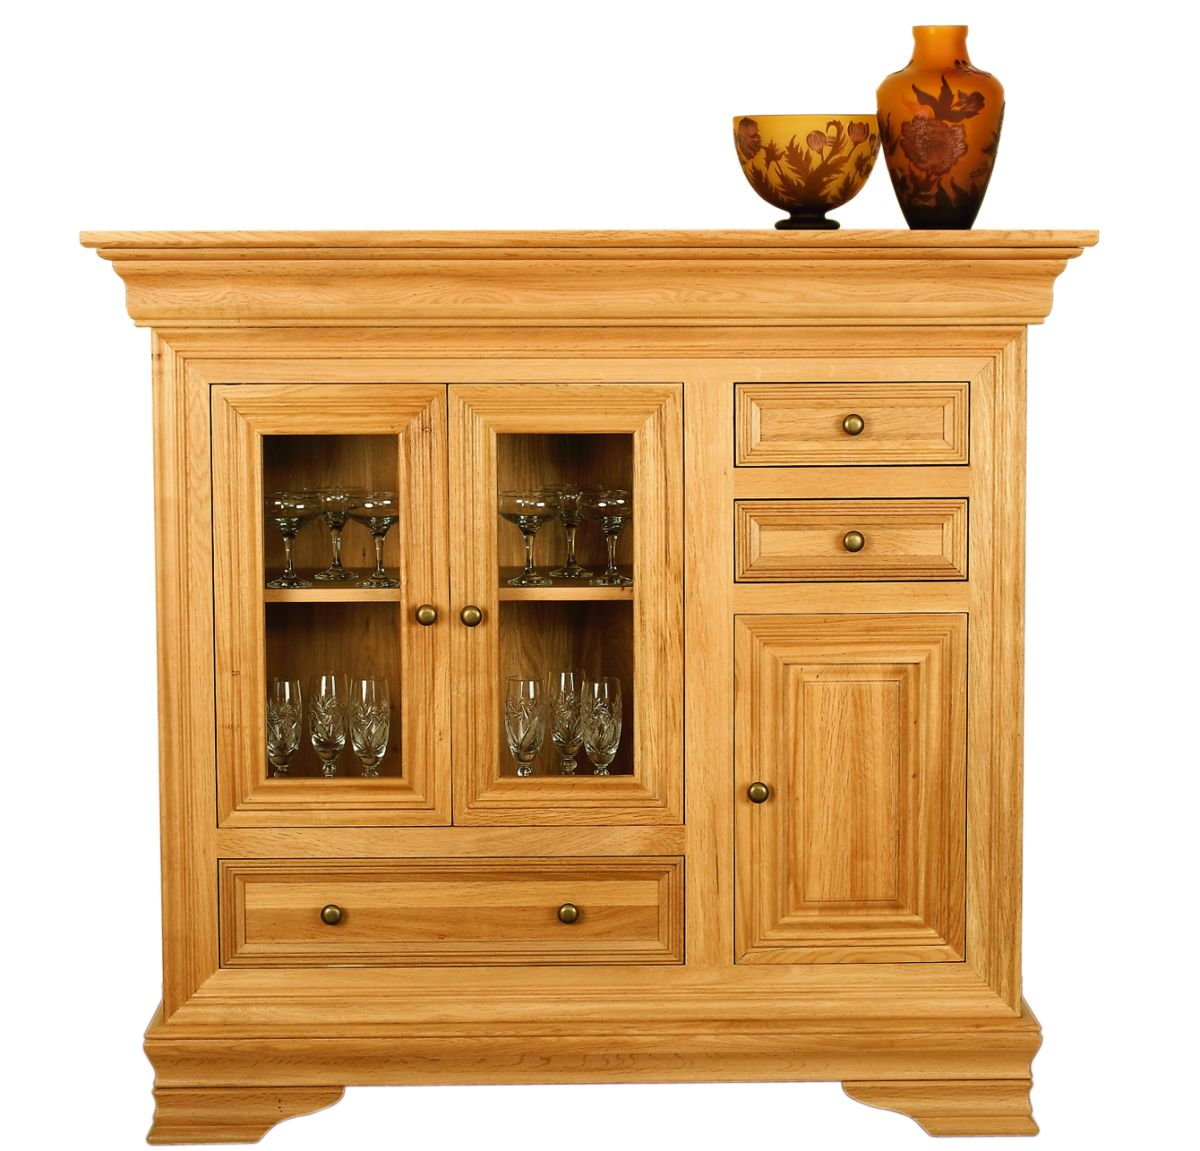 Solid Oak Highboard, 3 Doors and 3 Drawers